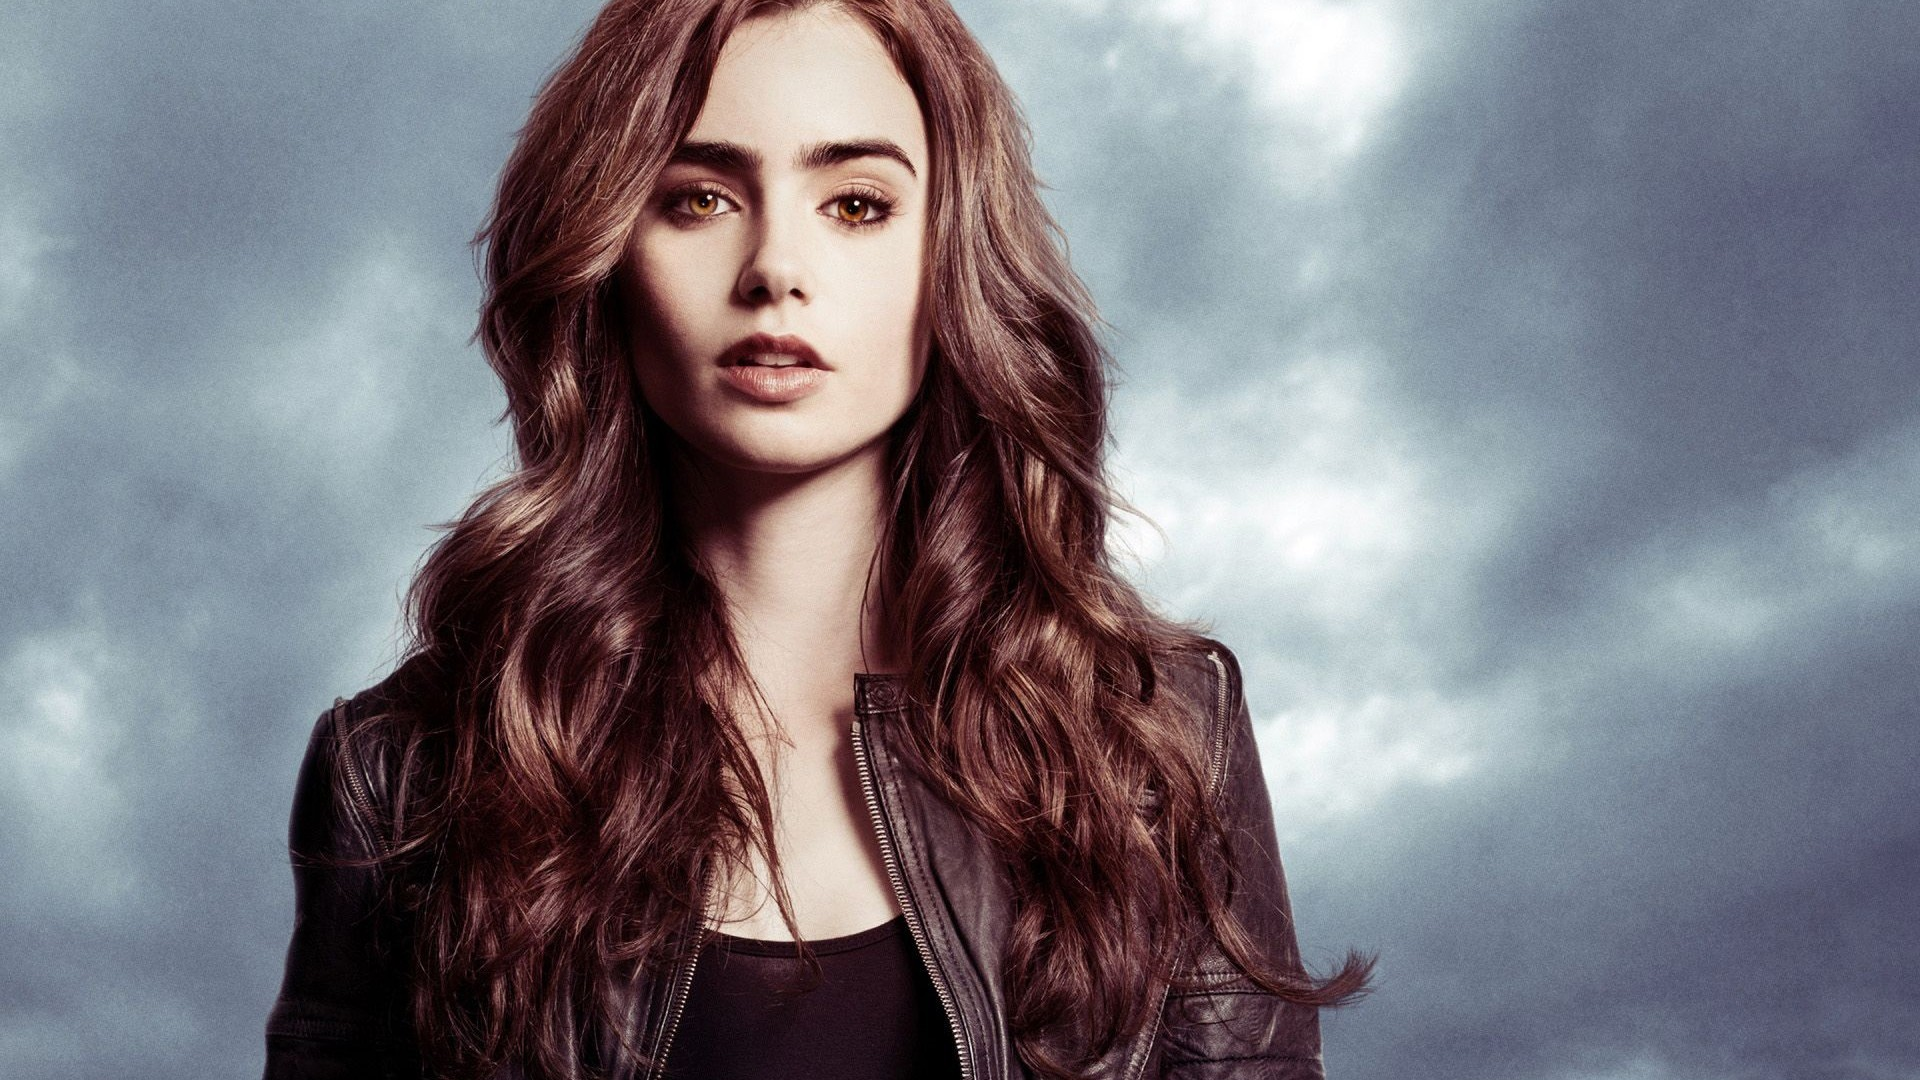 1920x1080 Lily Collins images Mirror Mirror HD wallpaper and